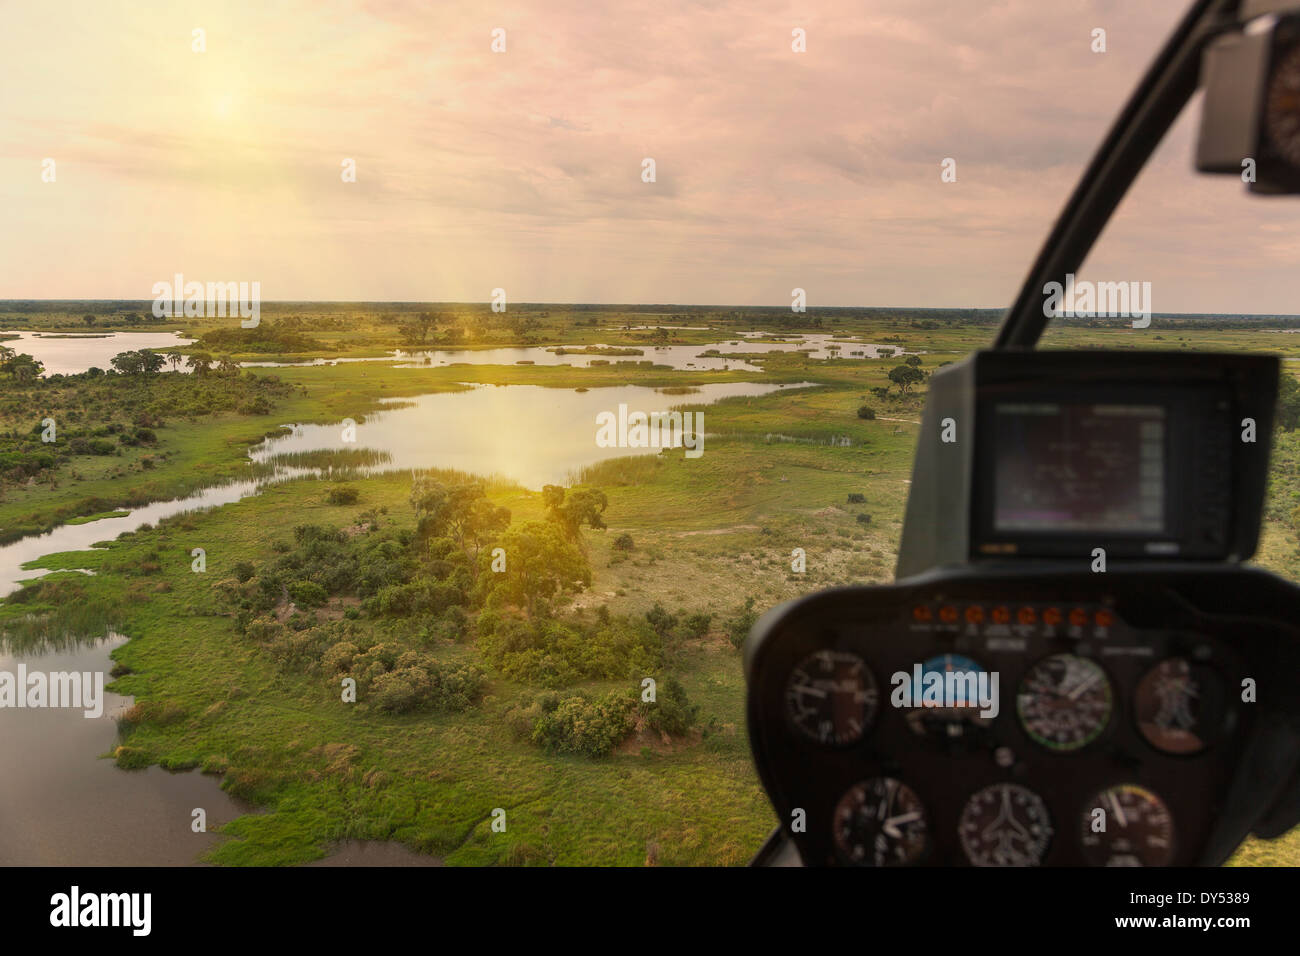 Aerial view from helicopter, Okavango Delta, Chobe National Park, Botswana, Africa - Stock Image